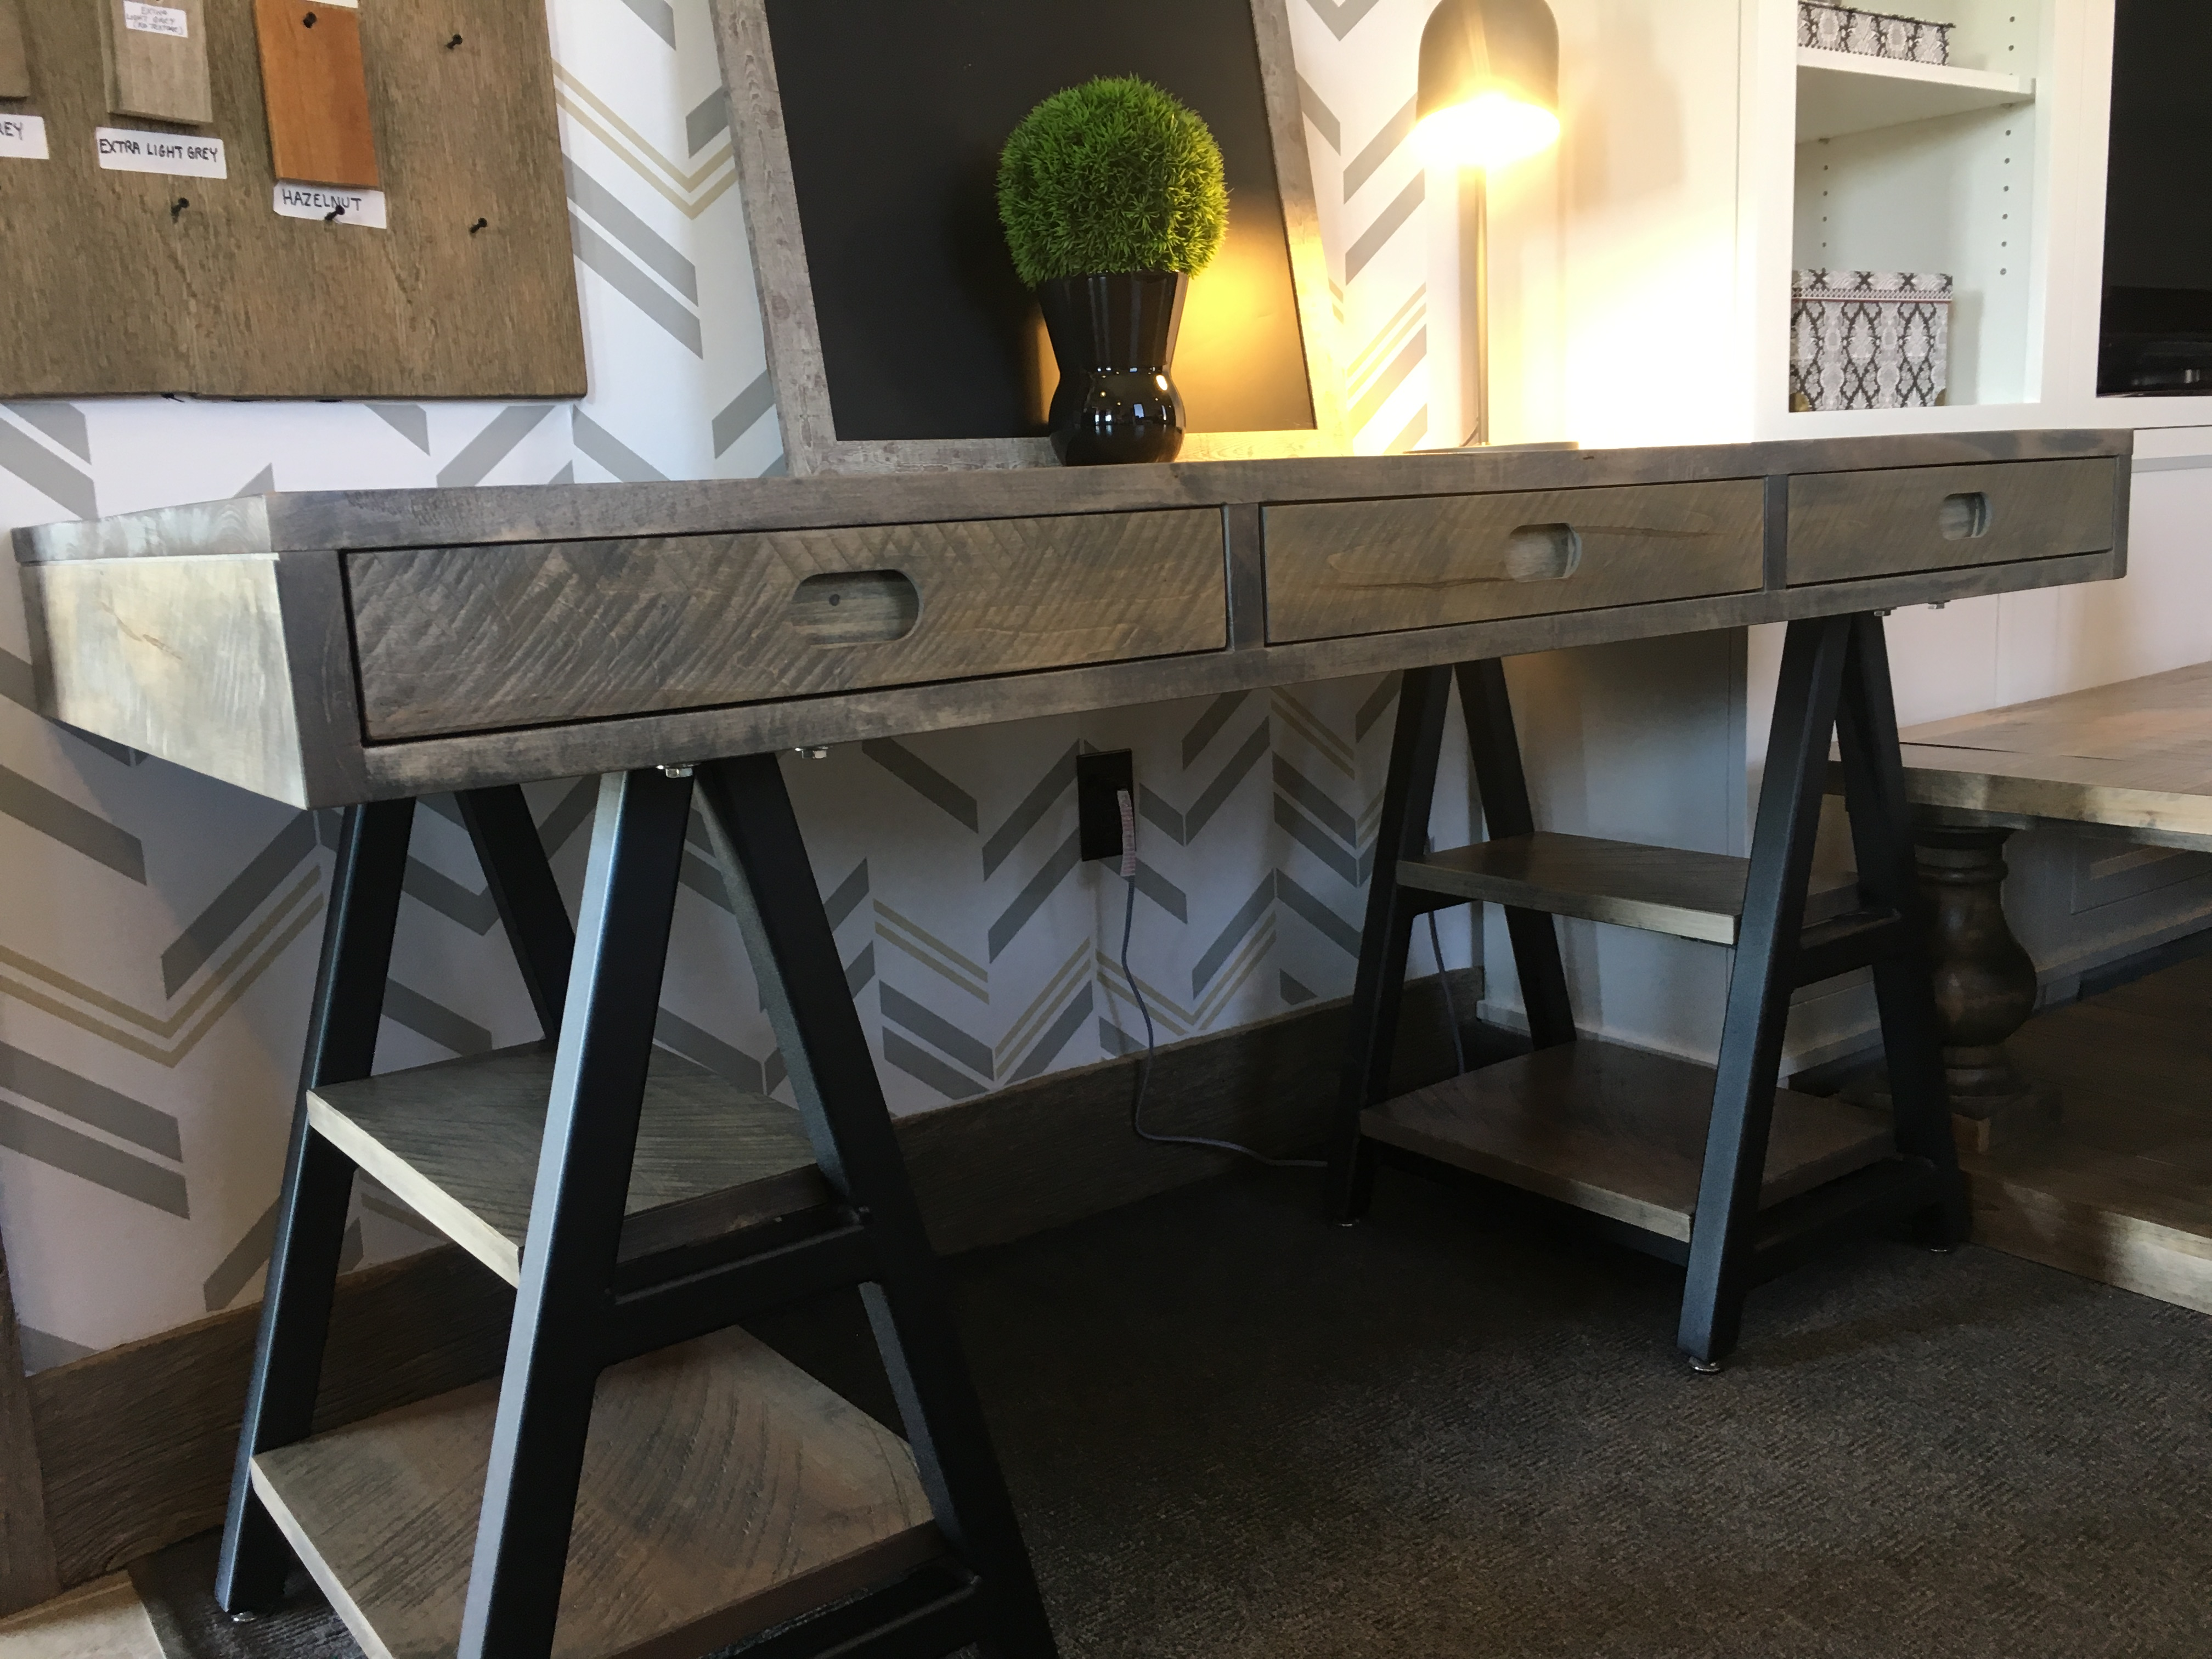 Sawhorse desk with drawers